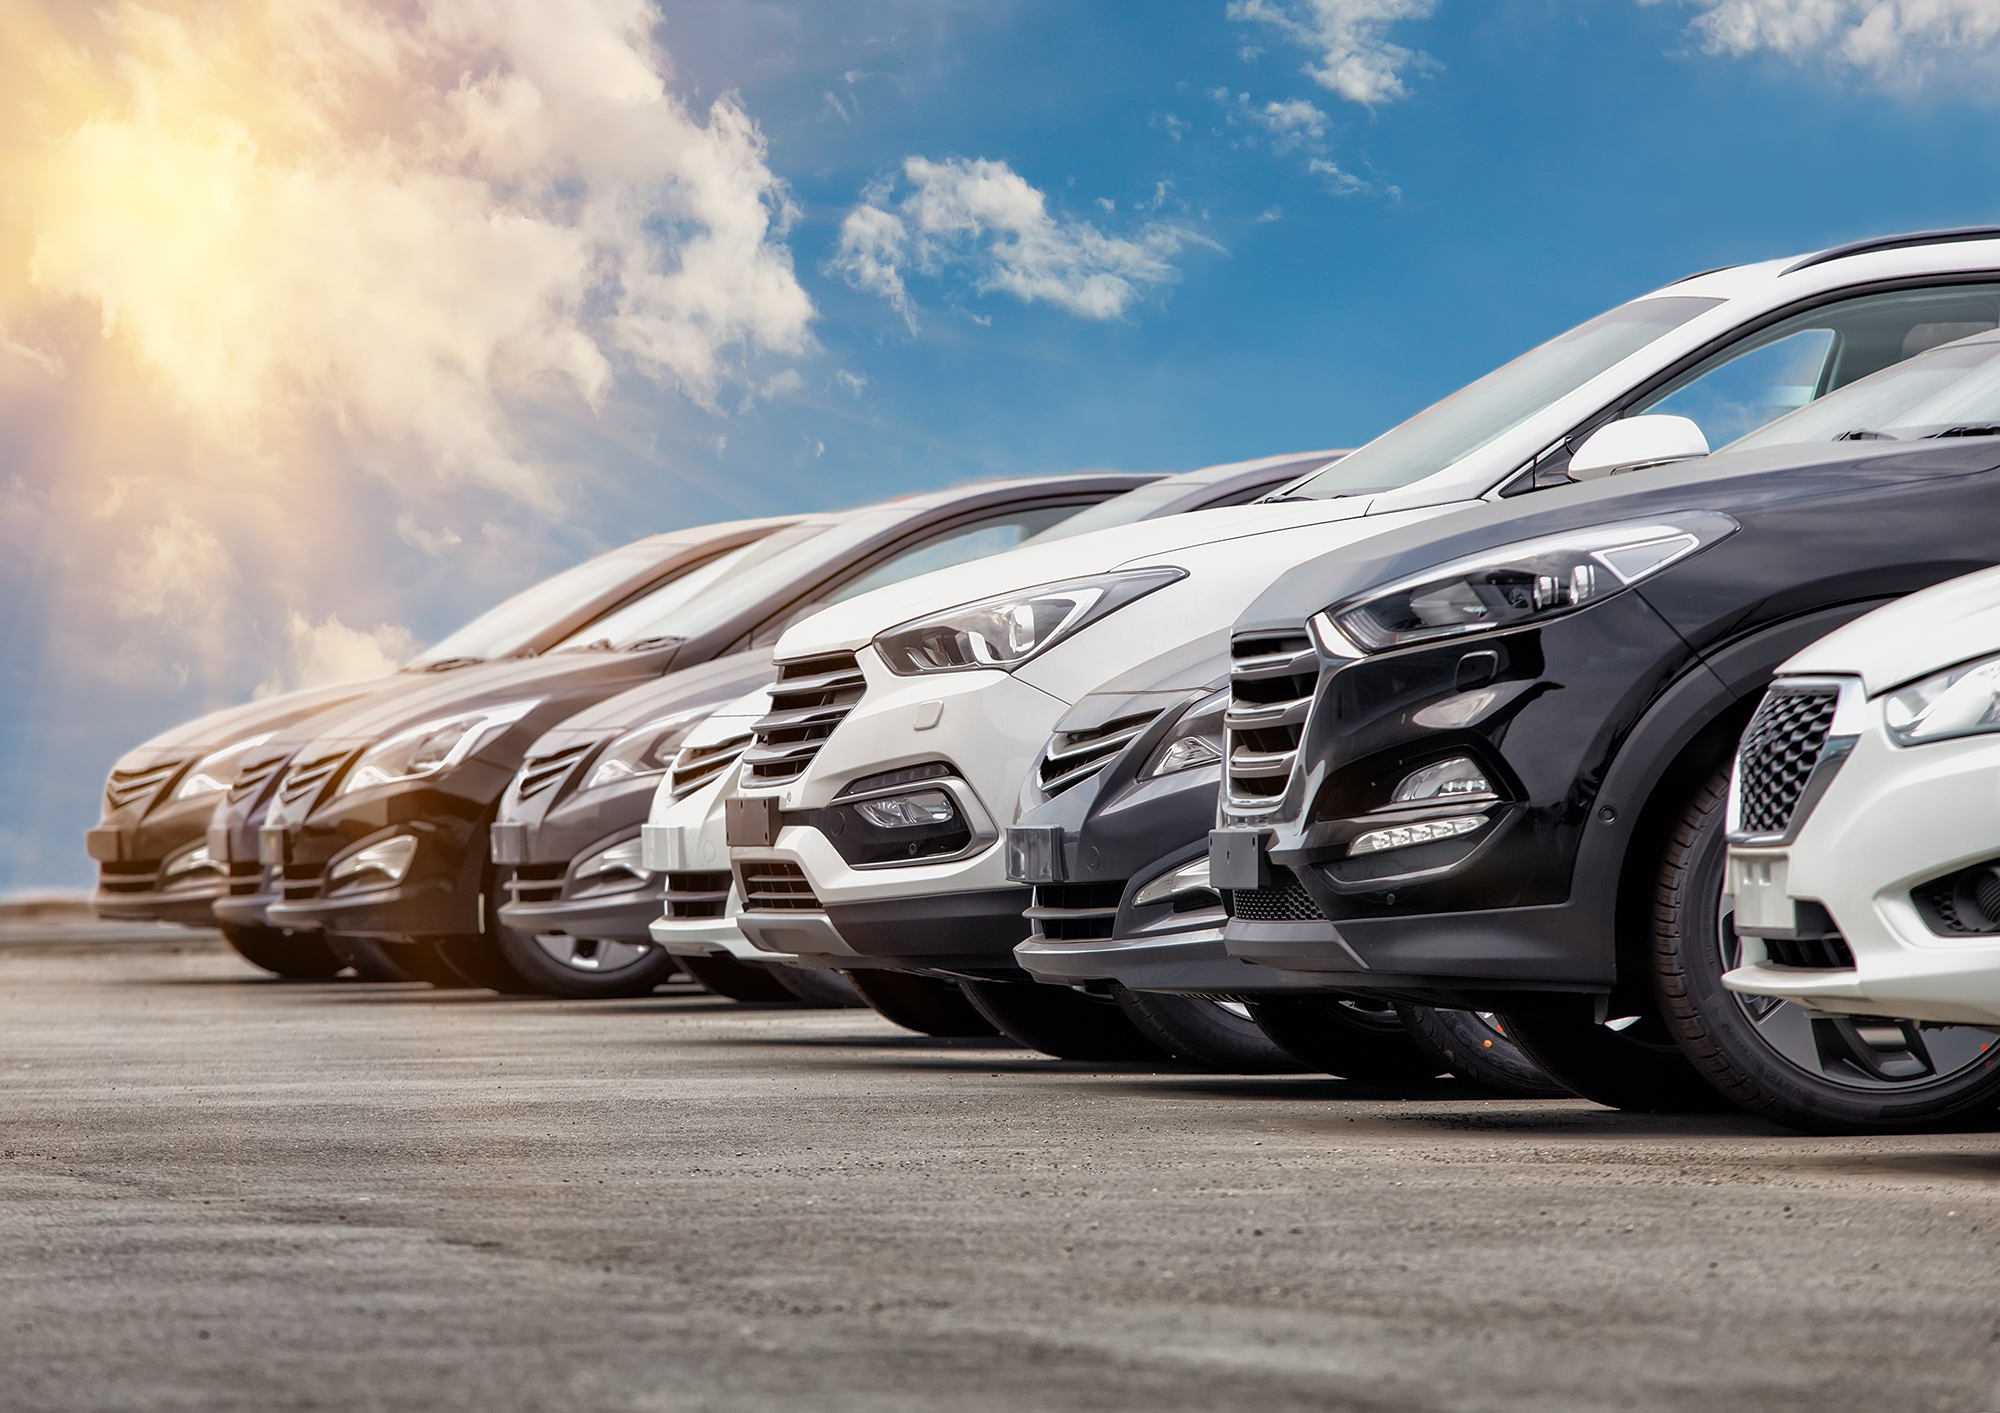 Row of cars. (Image: Shutterstock)